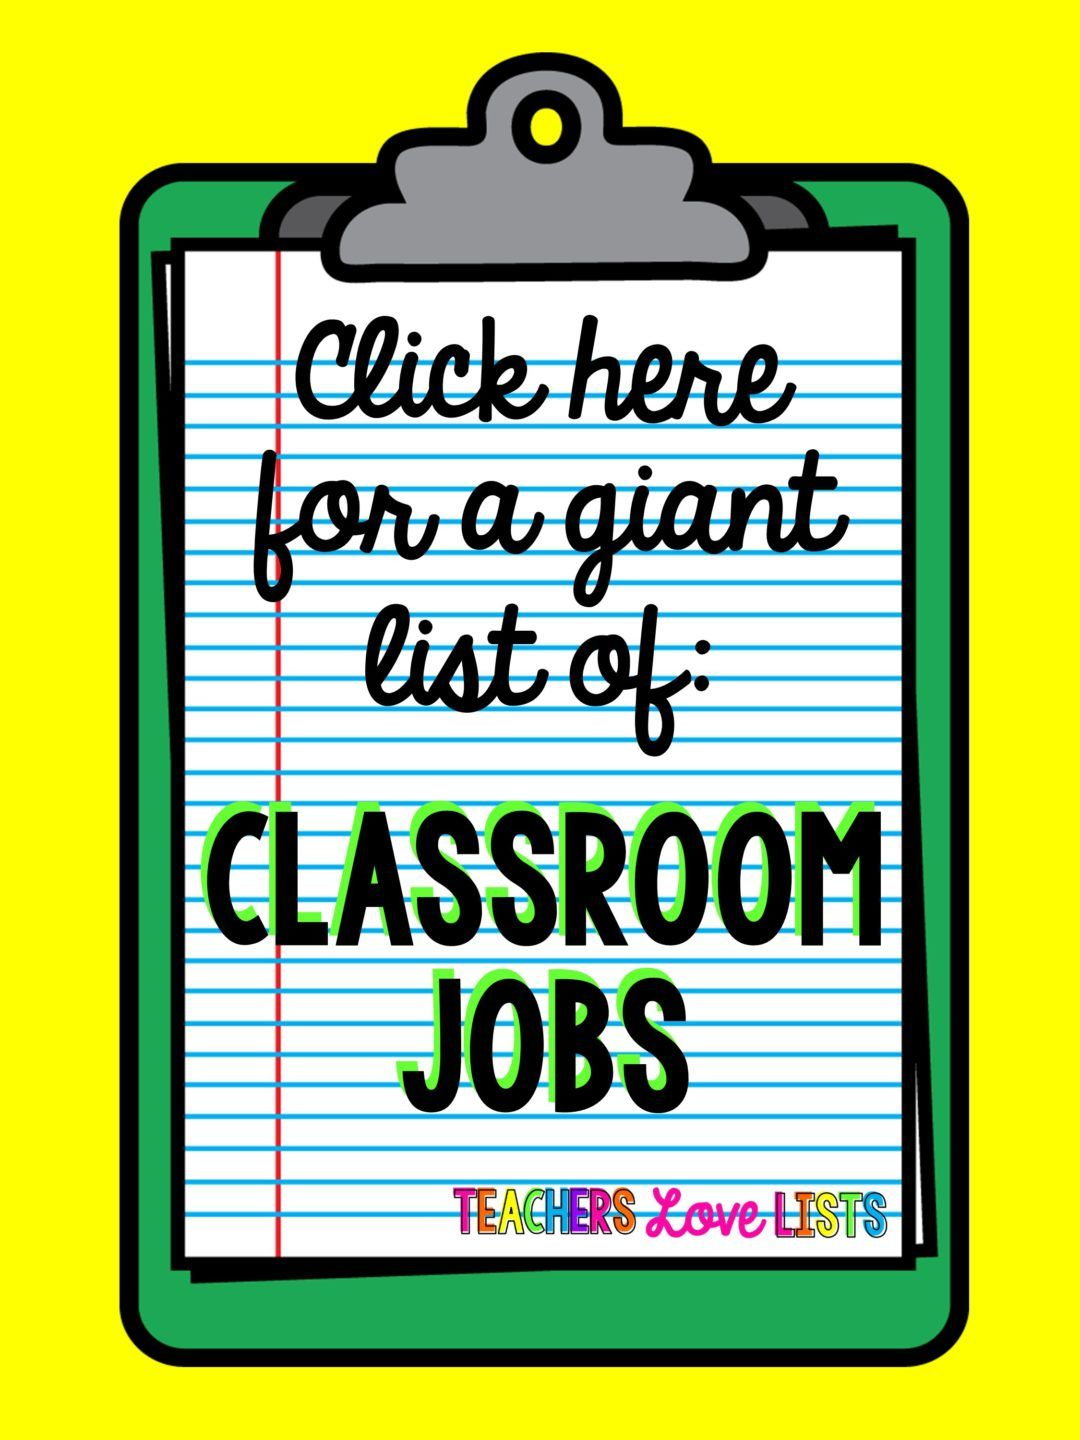 giant list of classroom jobs i love that there are even cute names for some of the jobs have a classroom job for every student to help build